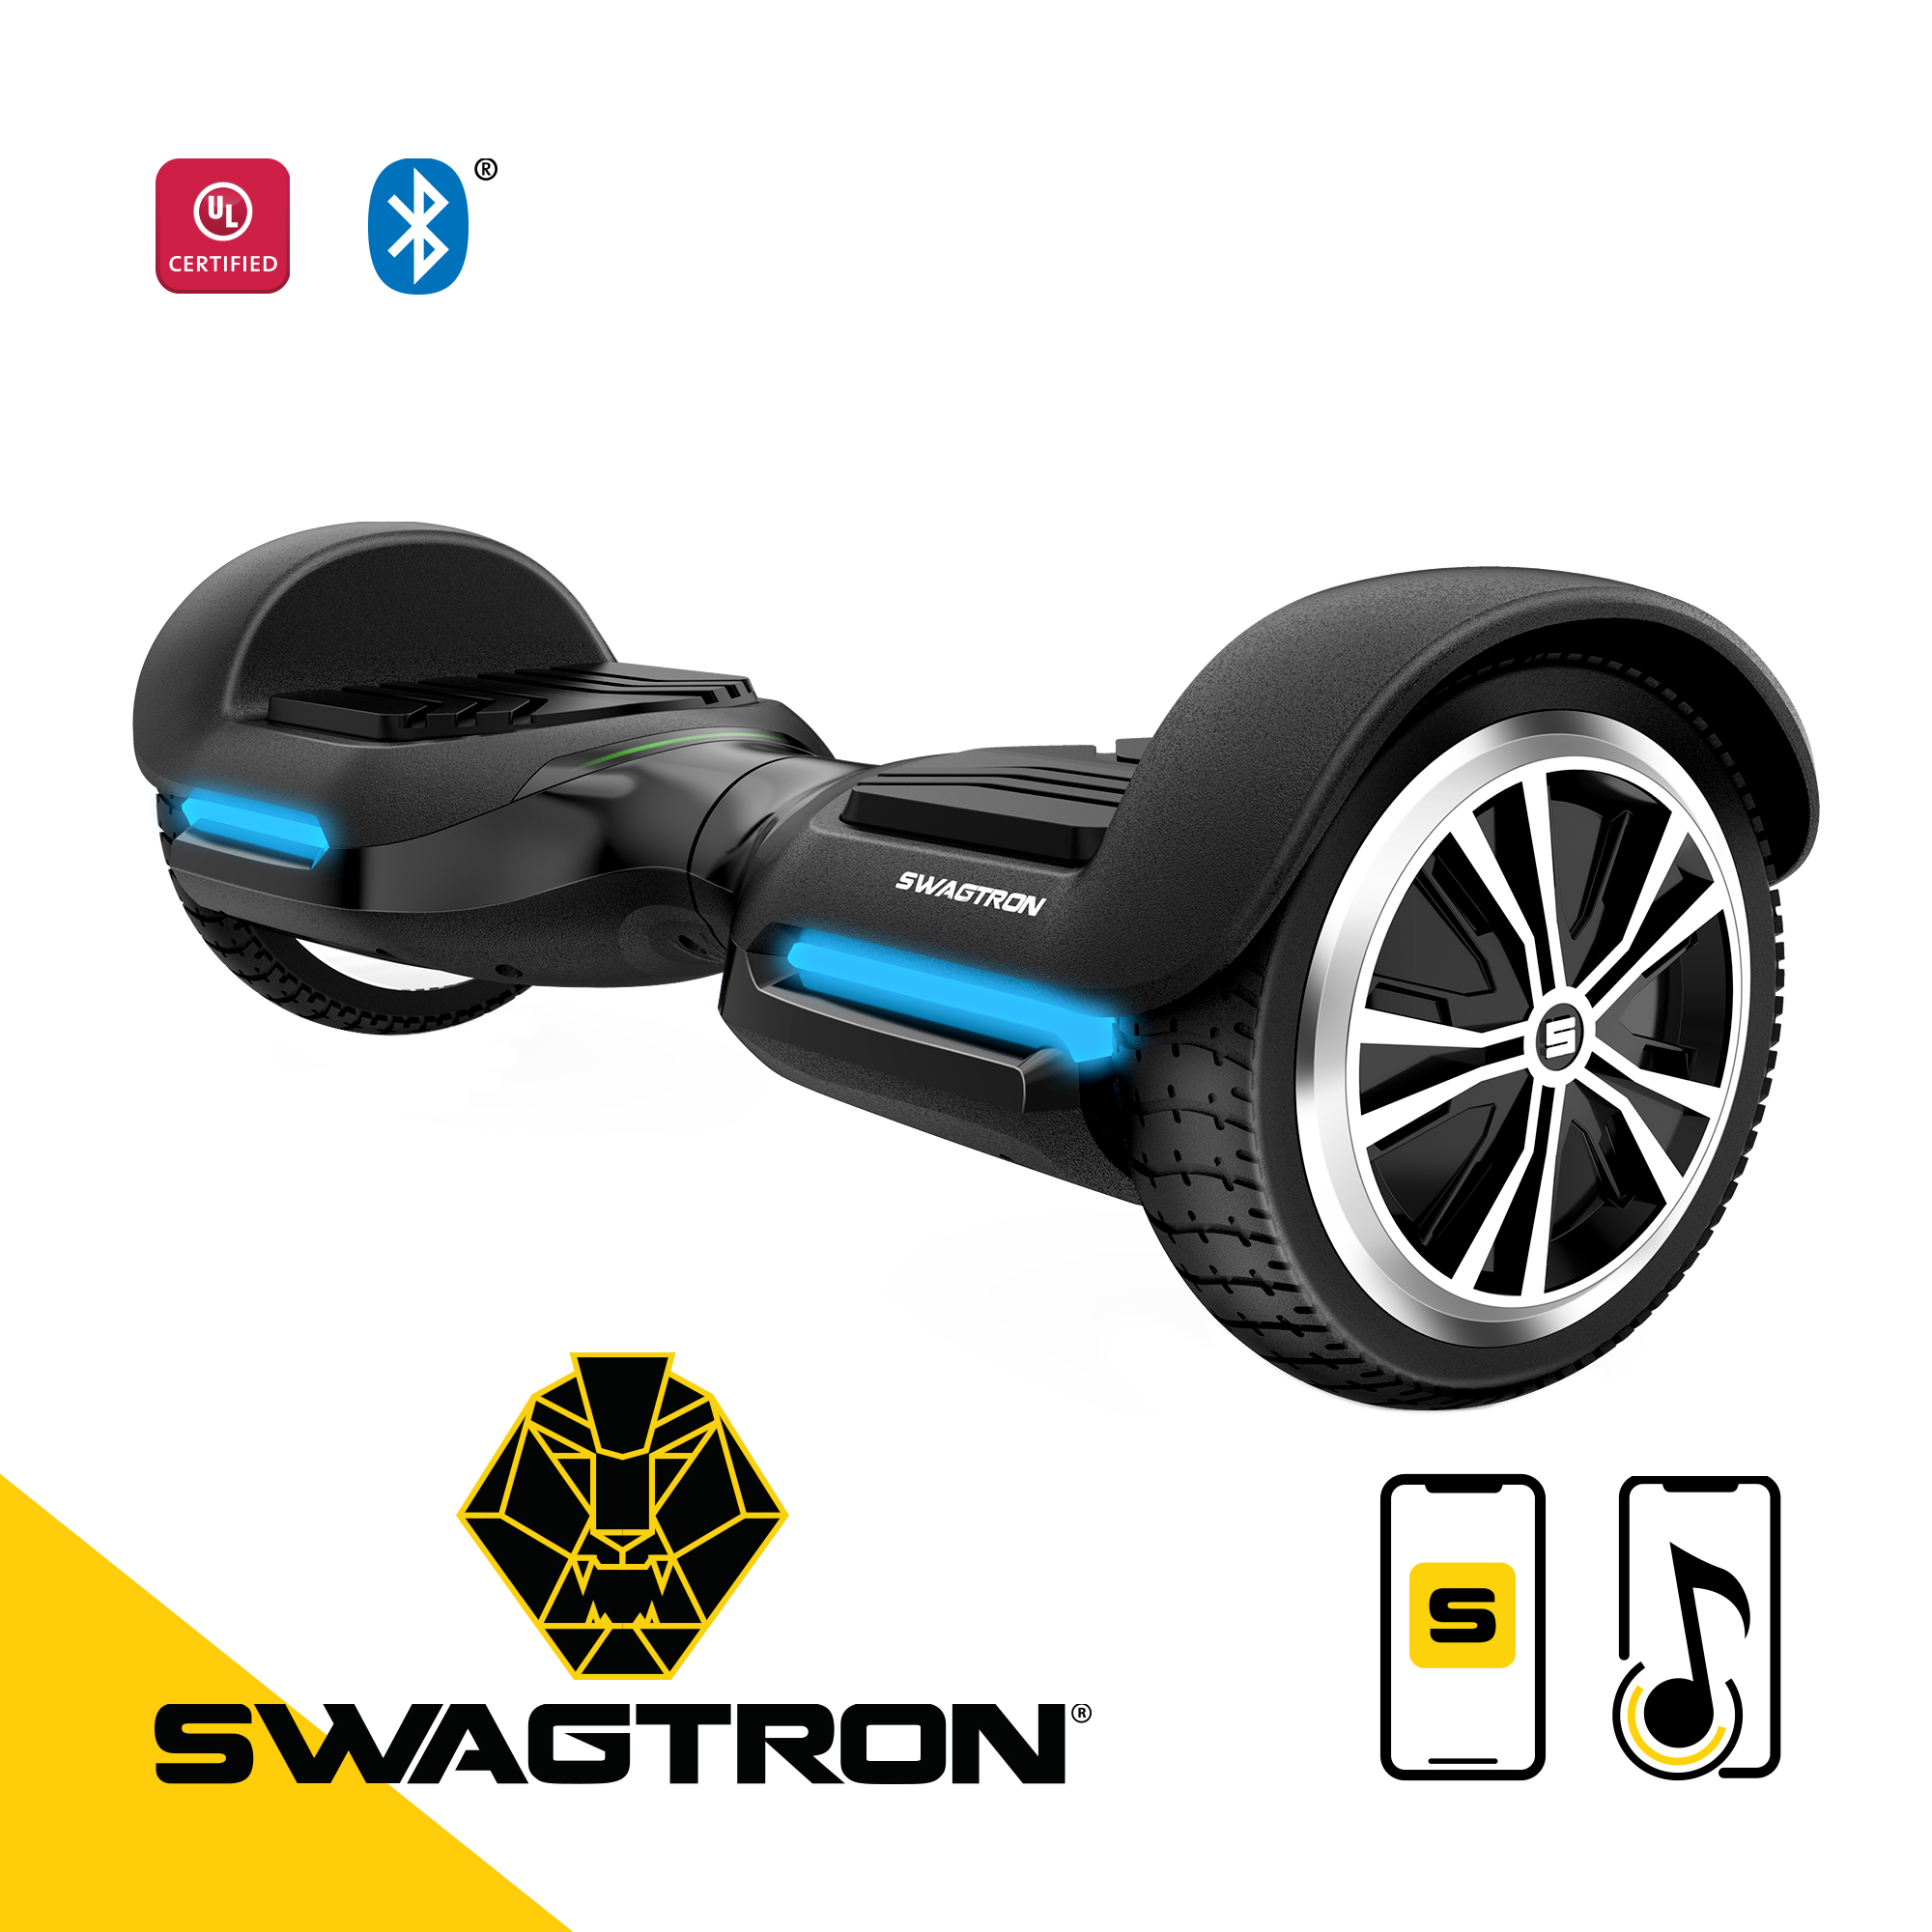 Swagtron Swagboard Vibe T580 Hoverboard with Bluetooth Speakers - Black